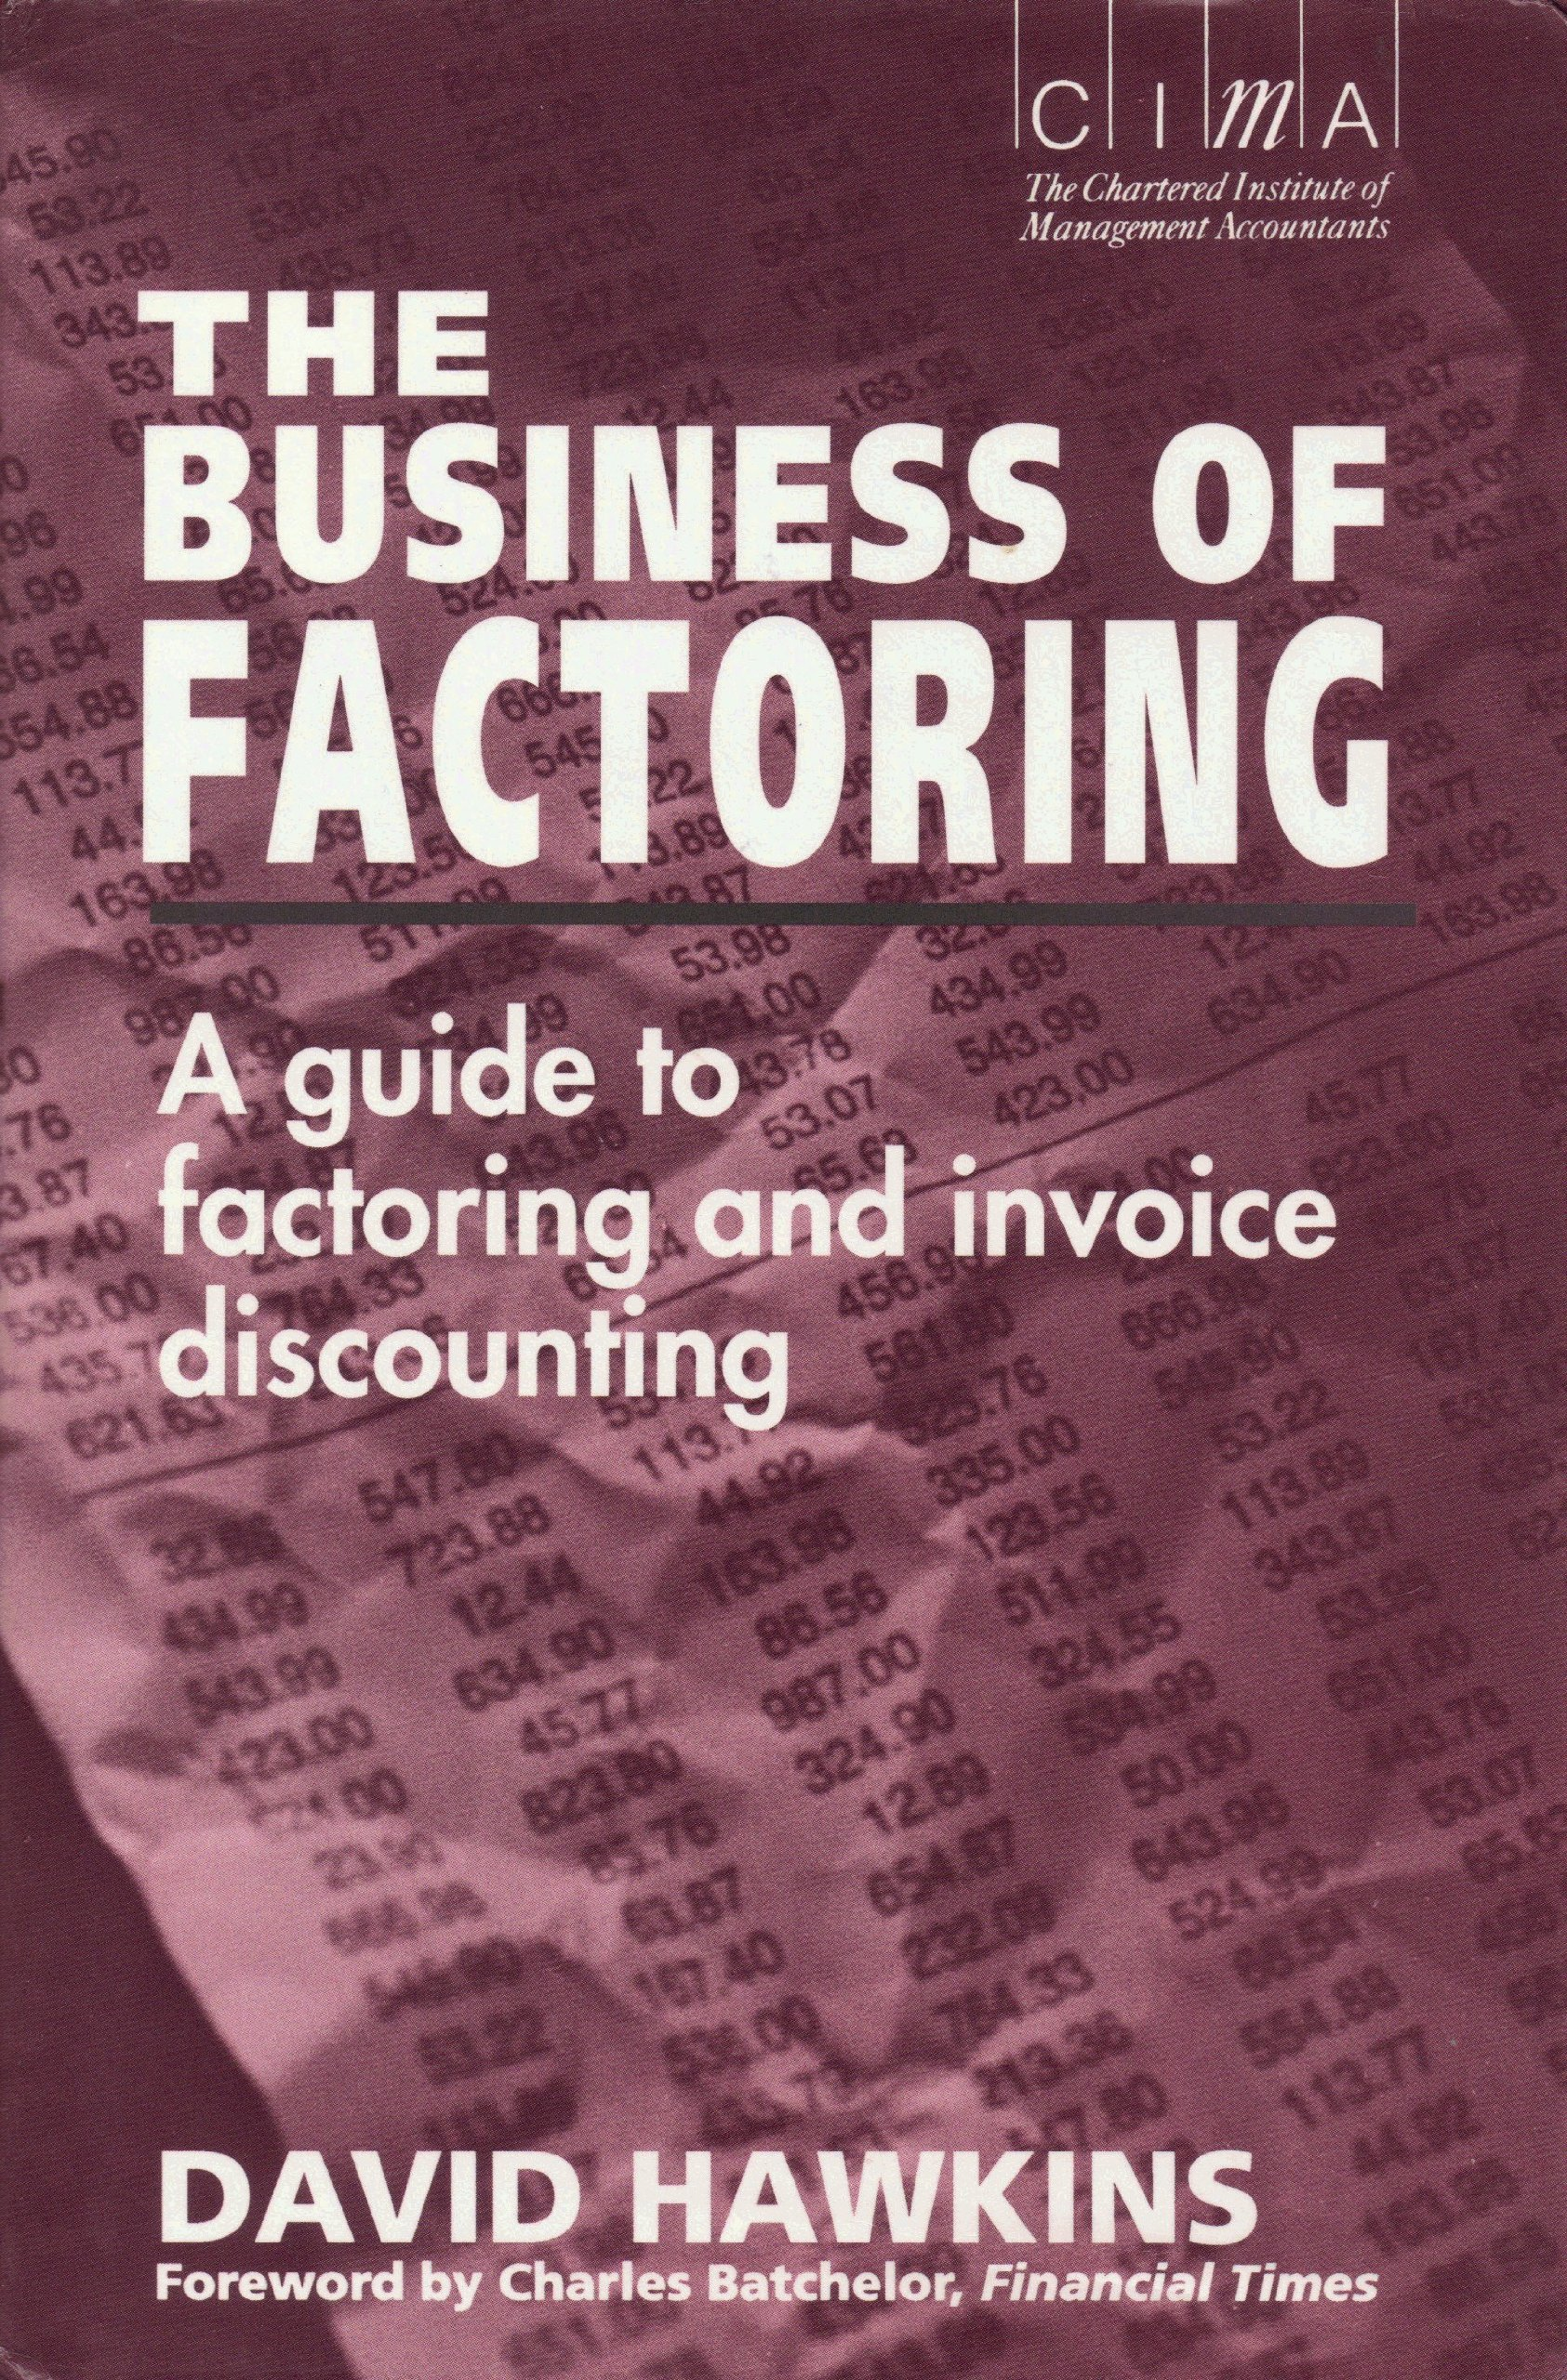 Invoice Pads Word Amazoncom The Business Of Factoring A Managers Guide To  Invoice Template Ireland Word with Business Invoice App Pdf Amazoncom The Business Of Factoring A Managers Guide To Factoring And Invoice  Discounting  David Hawkins Books Sample Invoice With Gst Pdf